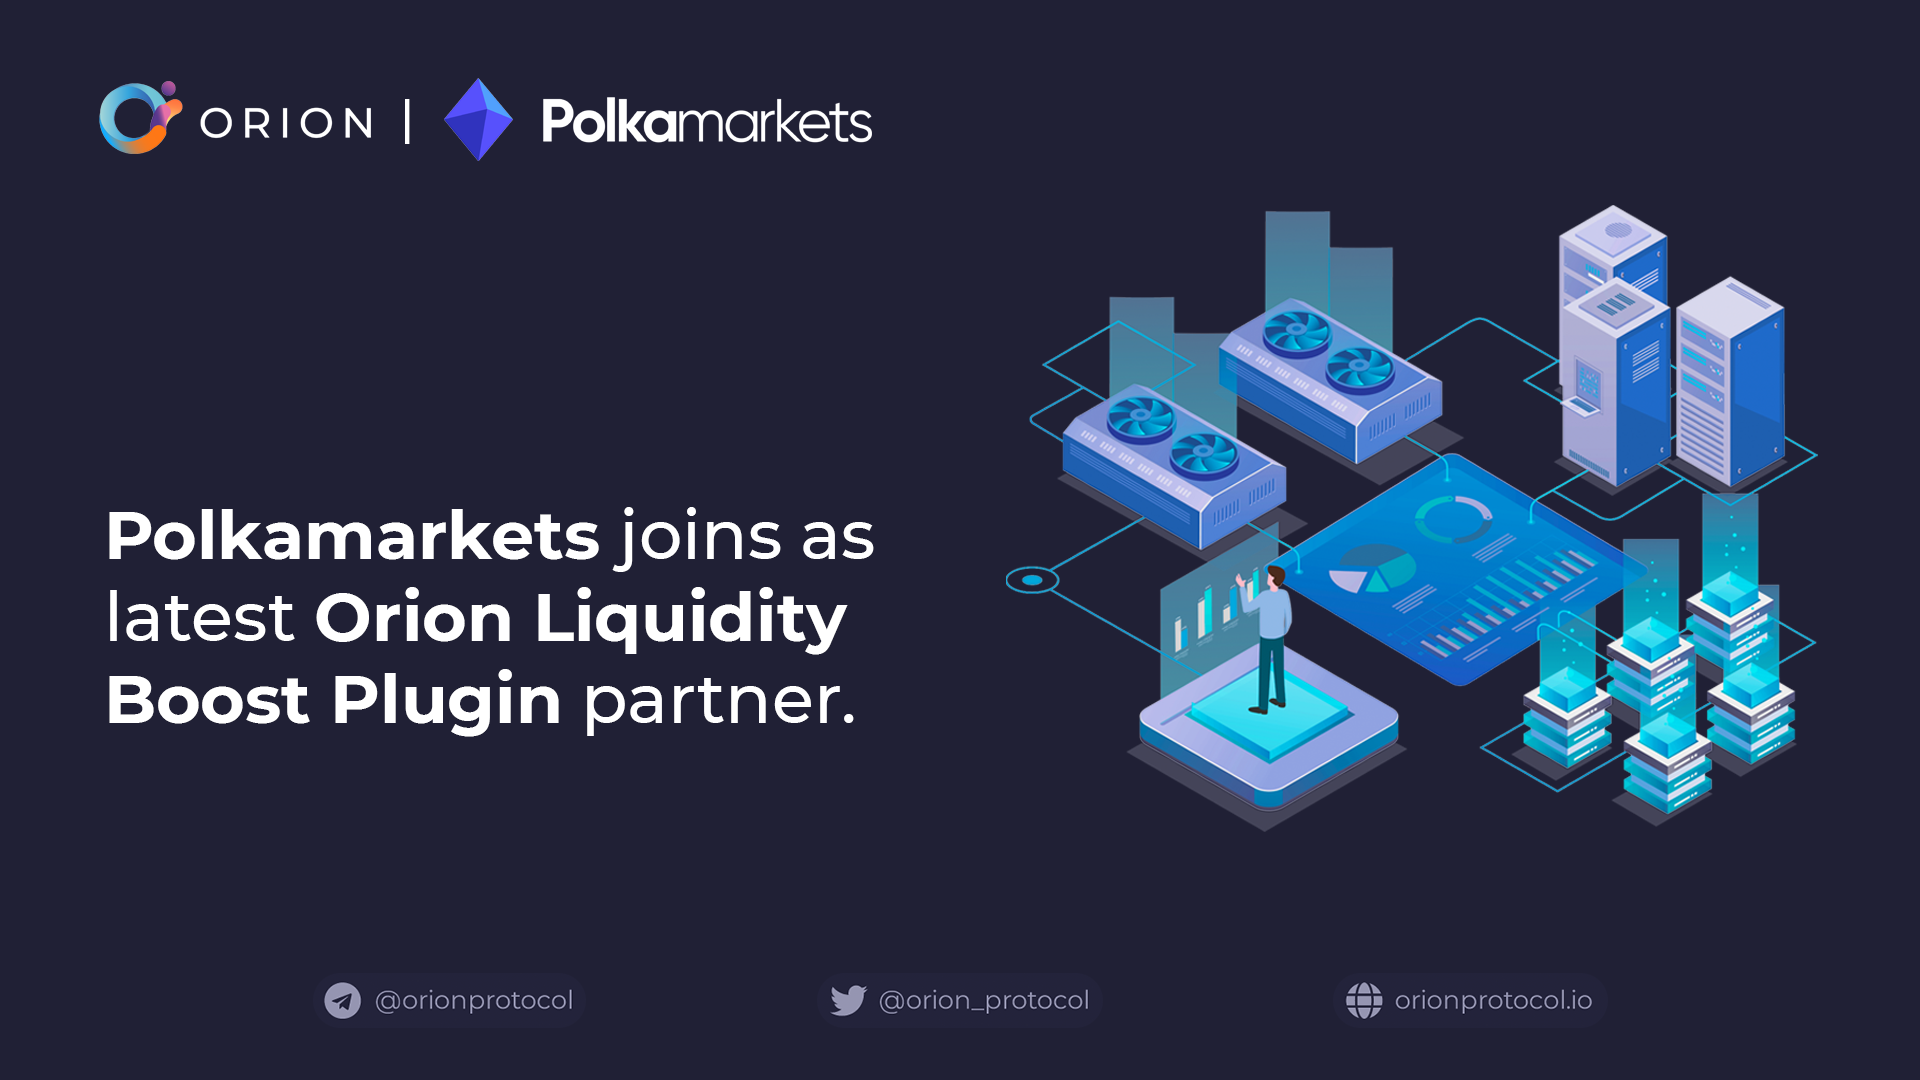 Polkamarkets joins as Liquidity Boost Plugin partner